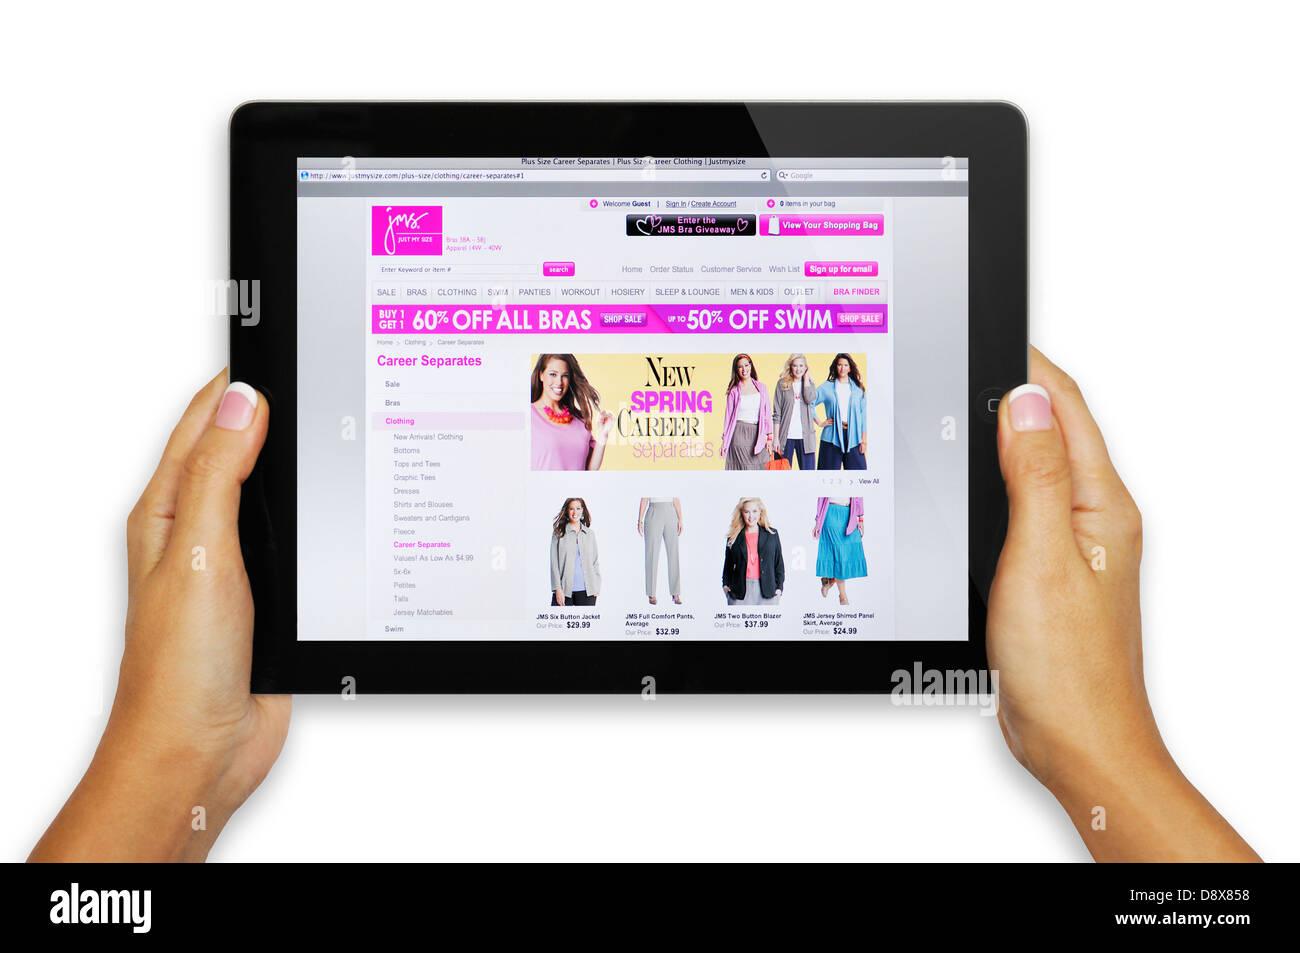 Just My Size Clothing Store On Ipad Screen Stock Photo 57125524 Alamy